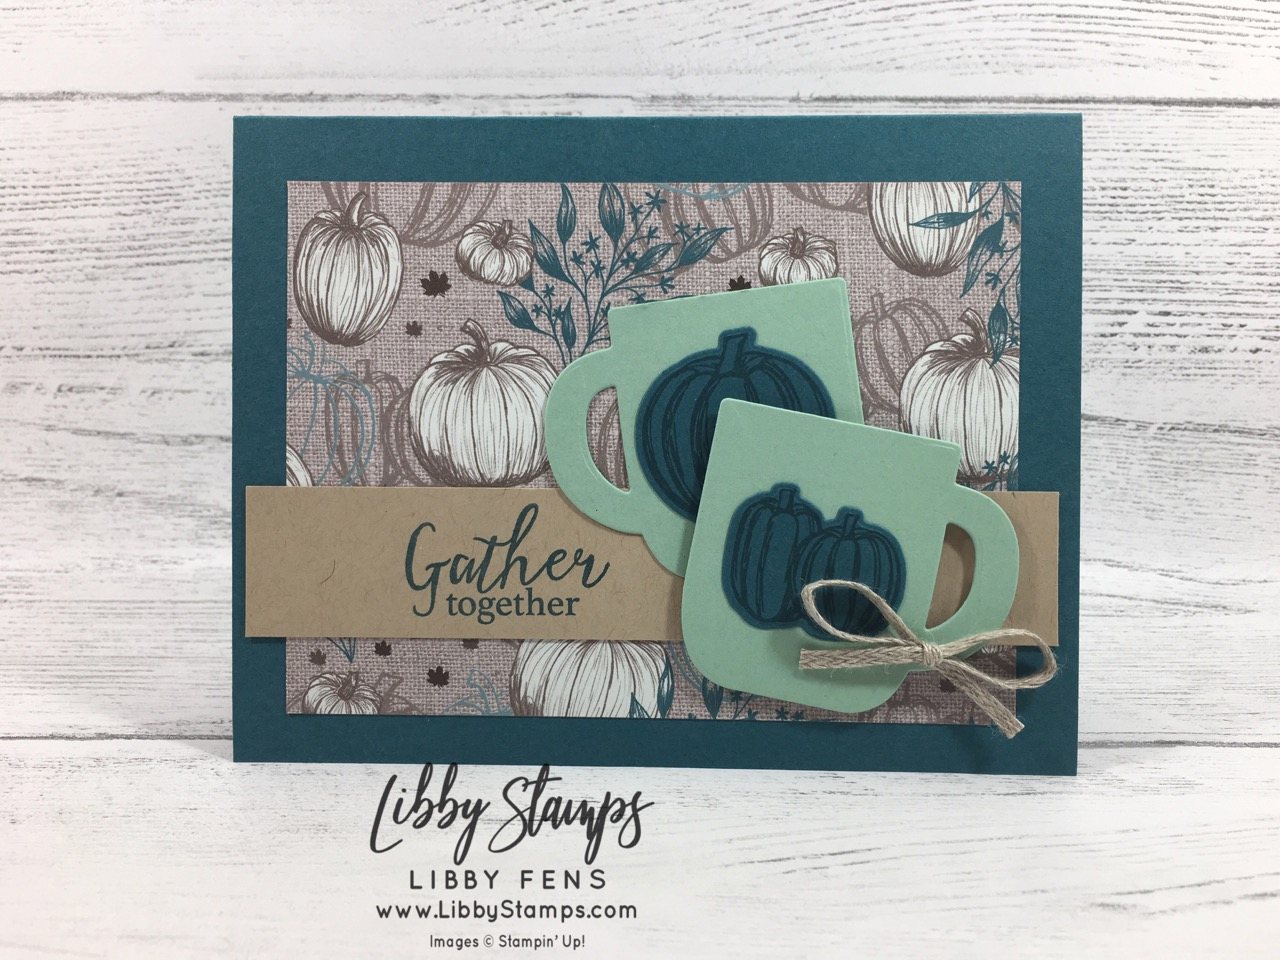 "libbystamps, Stampin Up!, Gather Together, Gathered Leaves Dies, Cup of Cheer Dies, Gather Together Bundle, Come to Gather DSP, 3/16"" Braided Linen Trim"